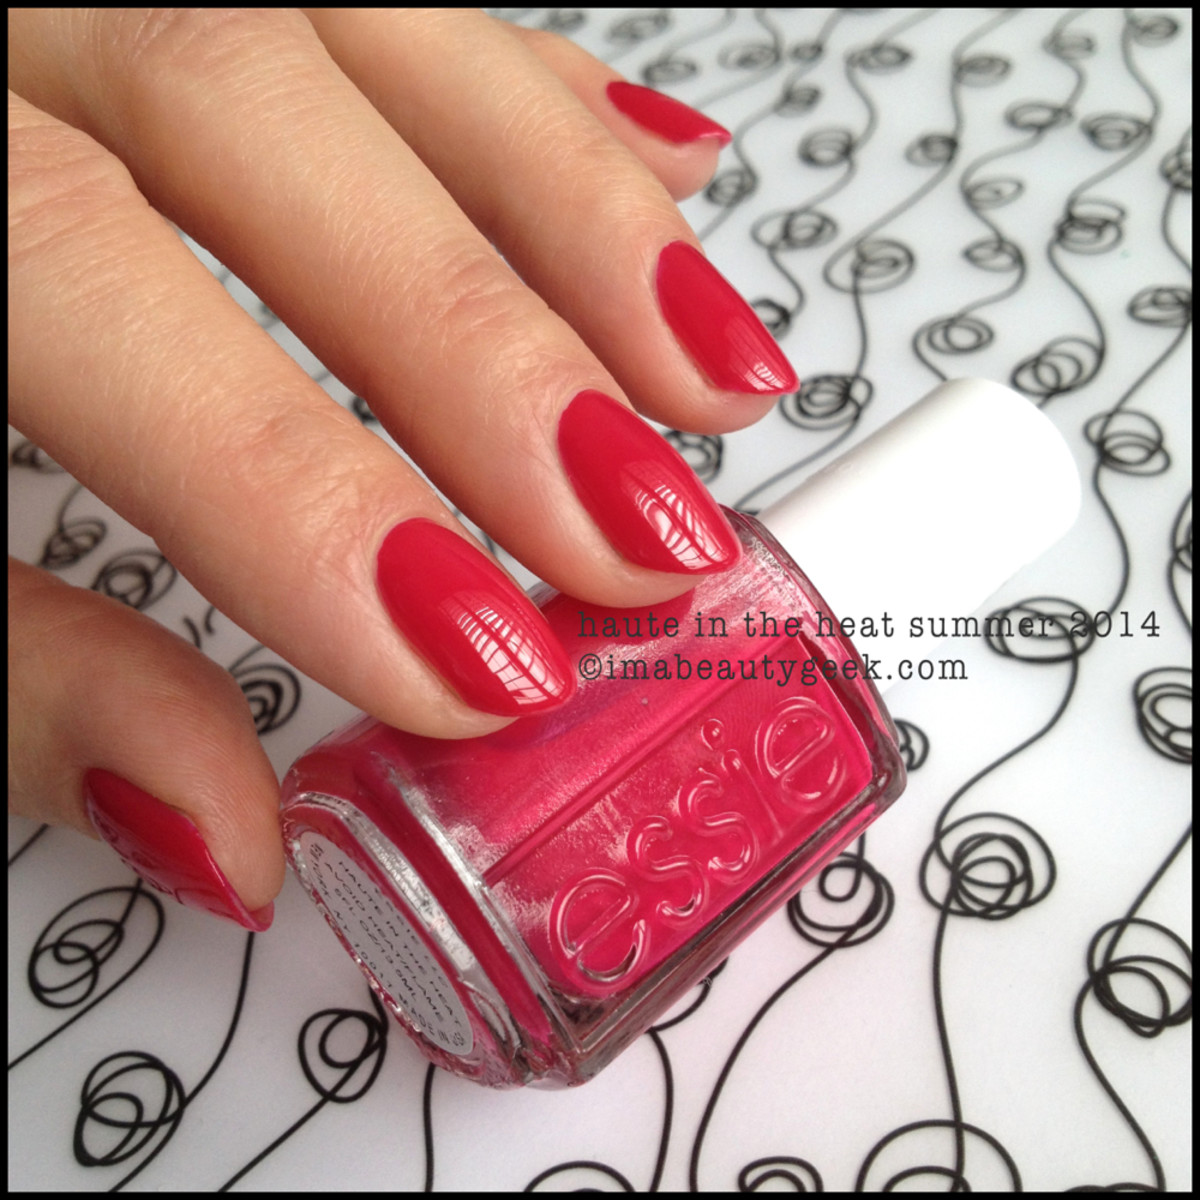 Essie Haute in the Heat Swatch Essie Summer 2014